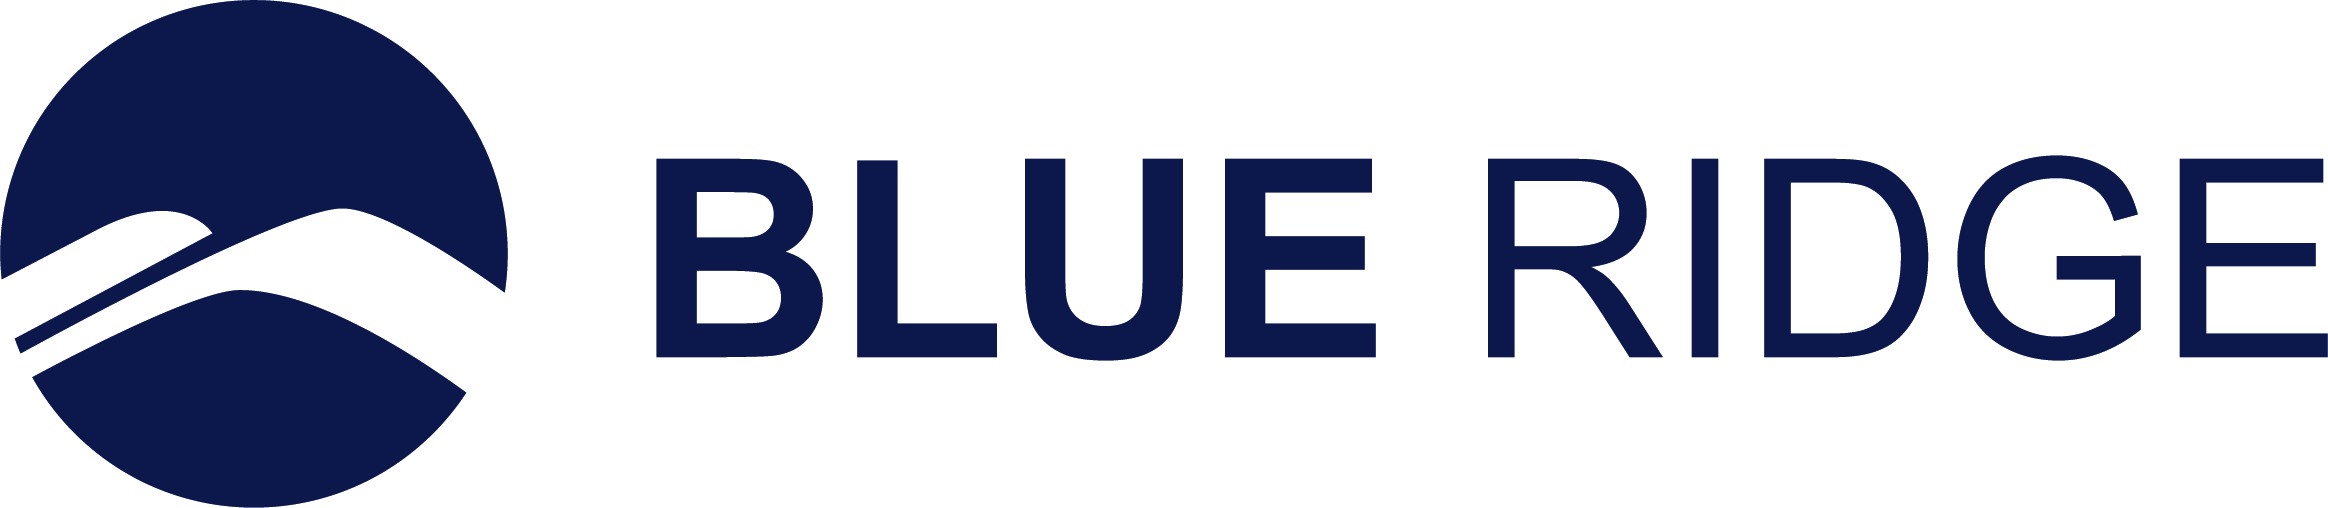 Blue Ridge CMO Ed Rusch Sees Investing in Marketing as Critical